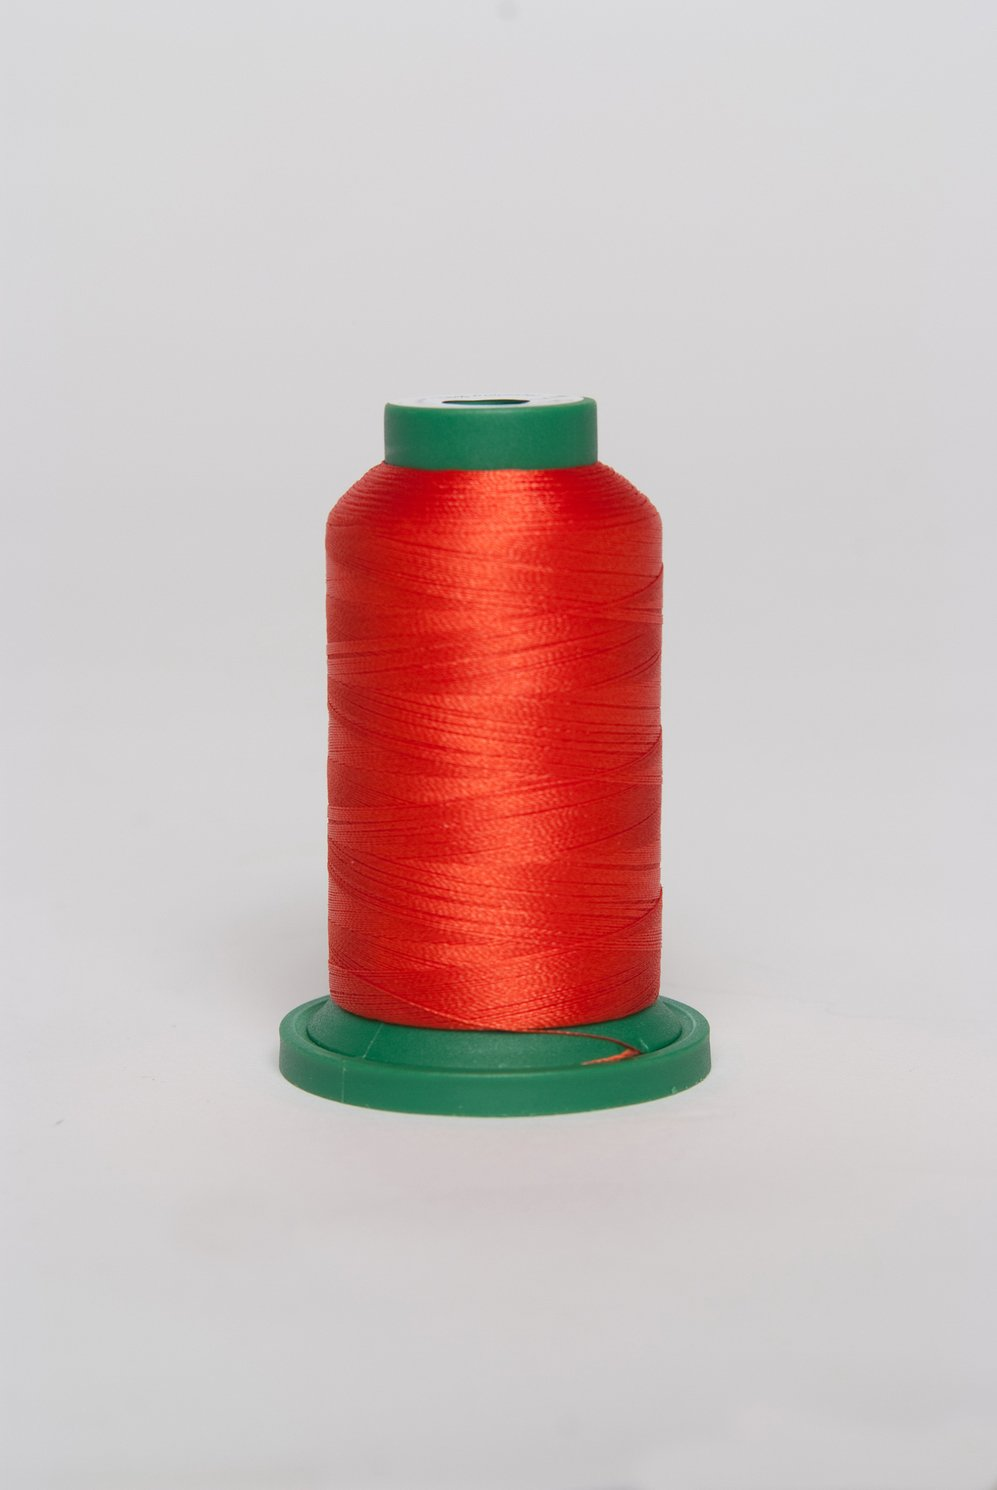 Heart - ES135 - Exquisite Embroidery Thread - 1000 meters